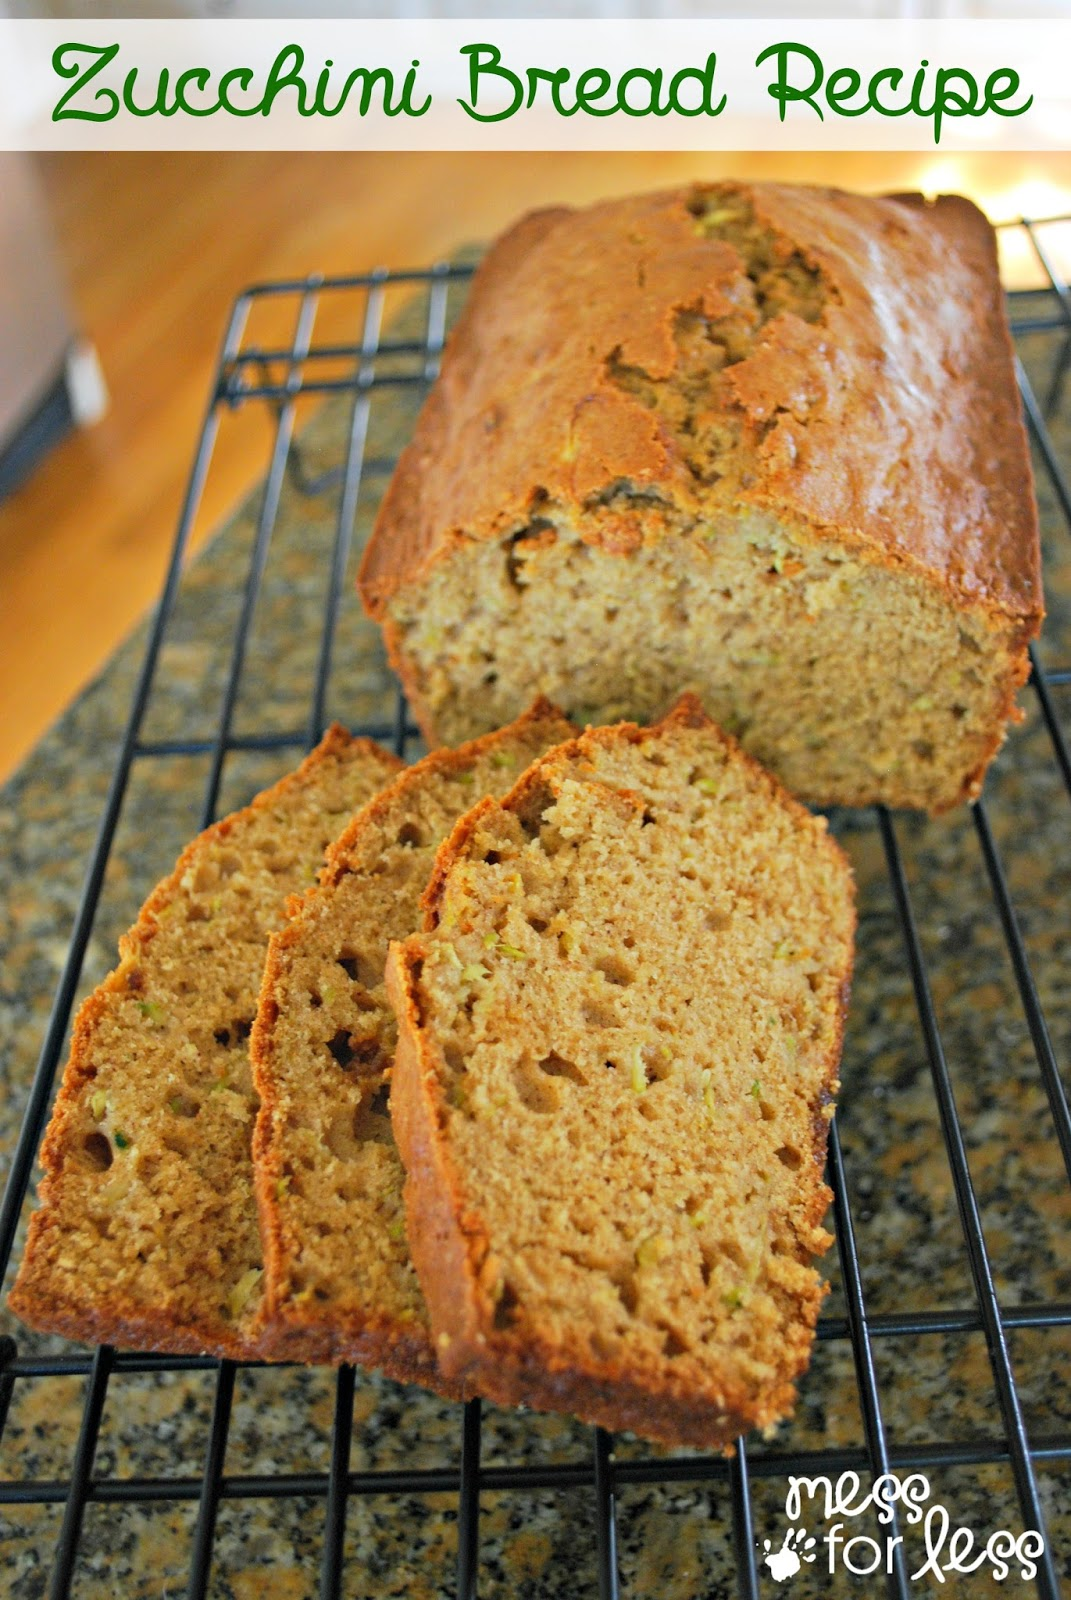 Healthy zucchini Bread recipe from messforless.net